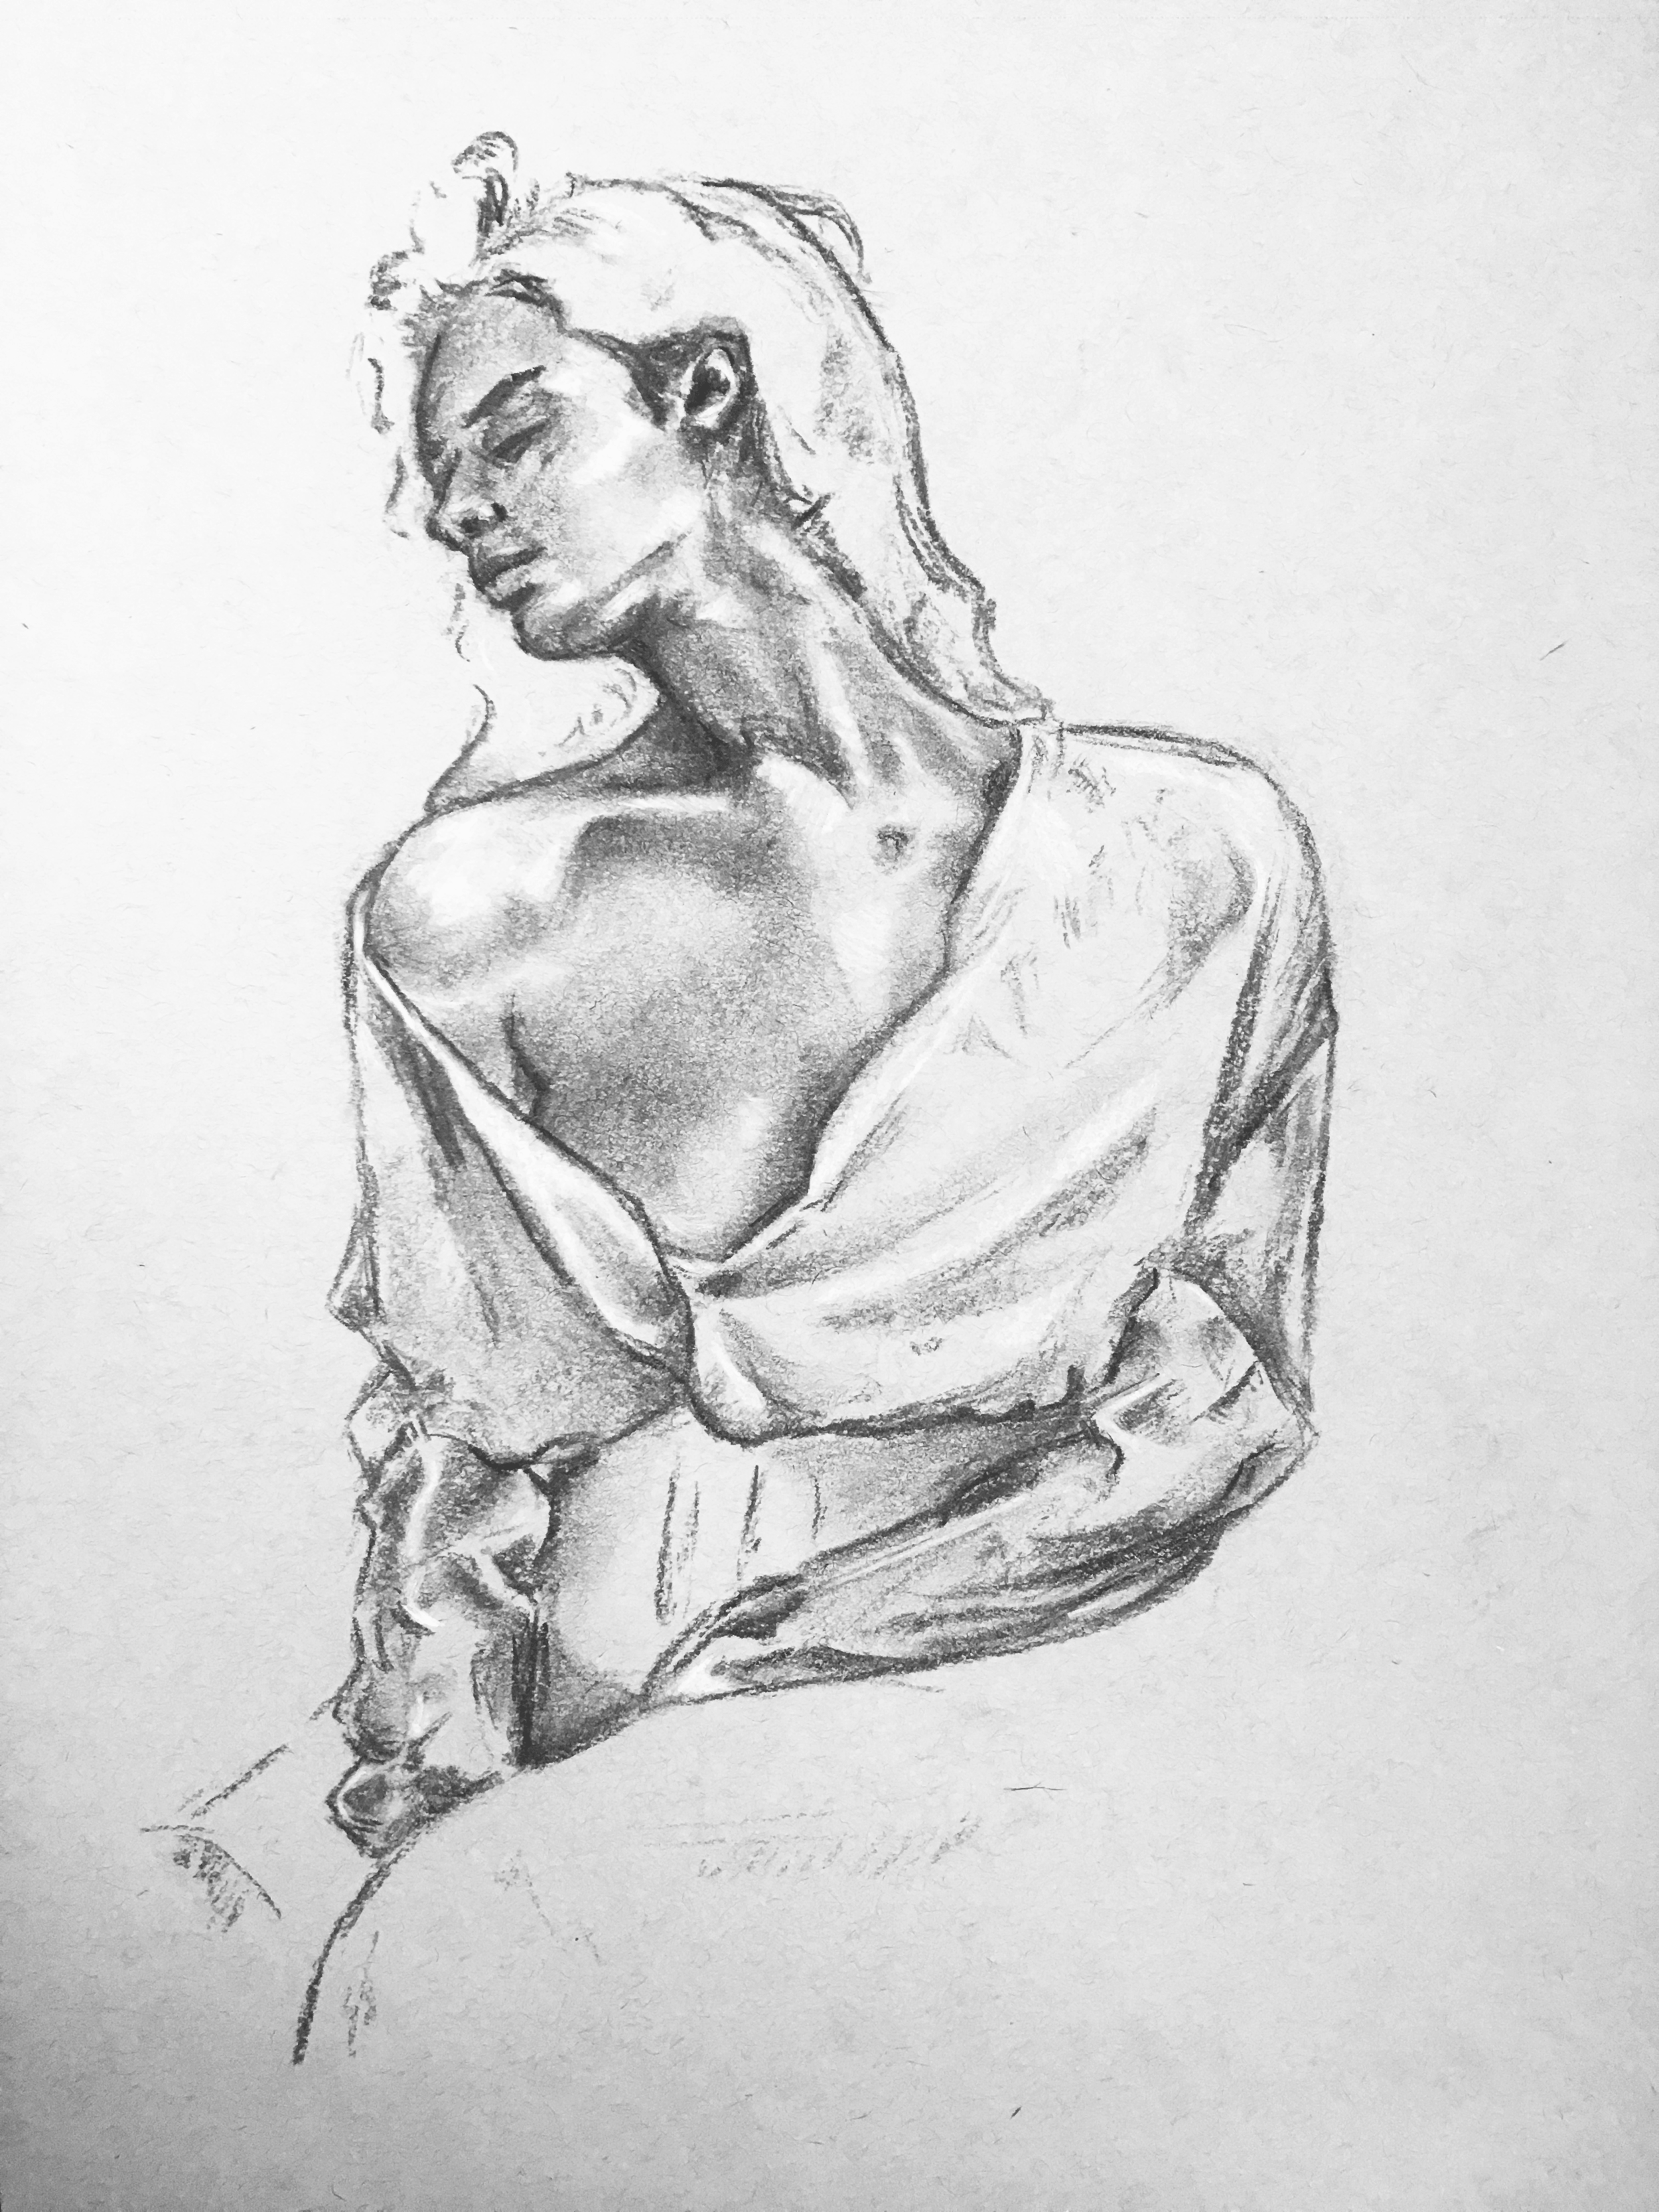 Willow charcoal on A3 toned grey sketch paper